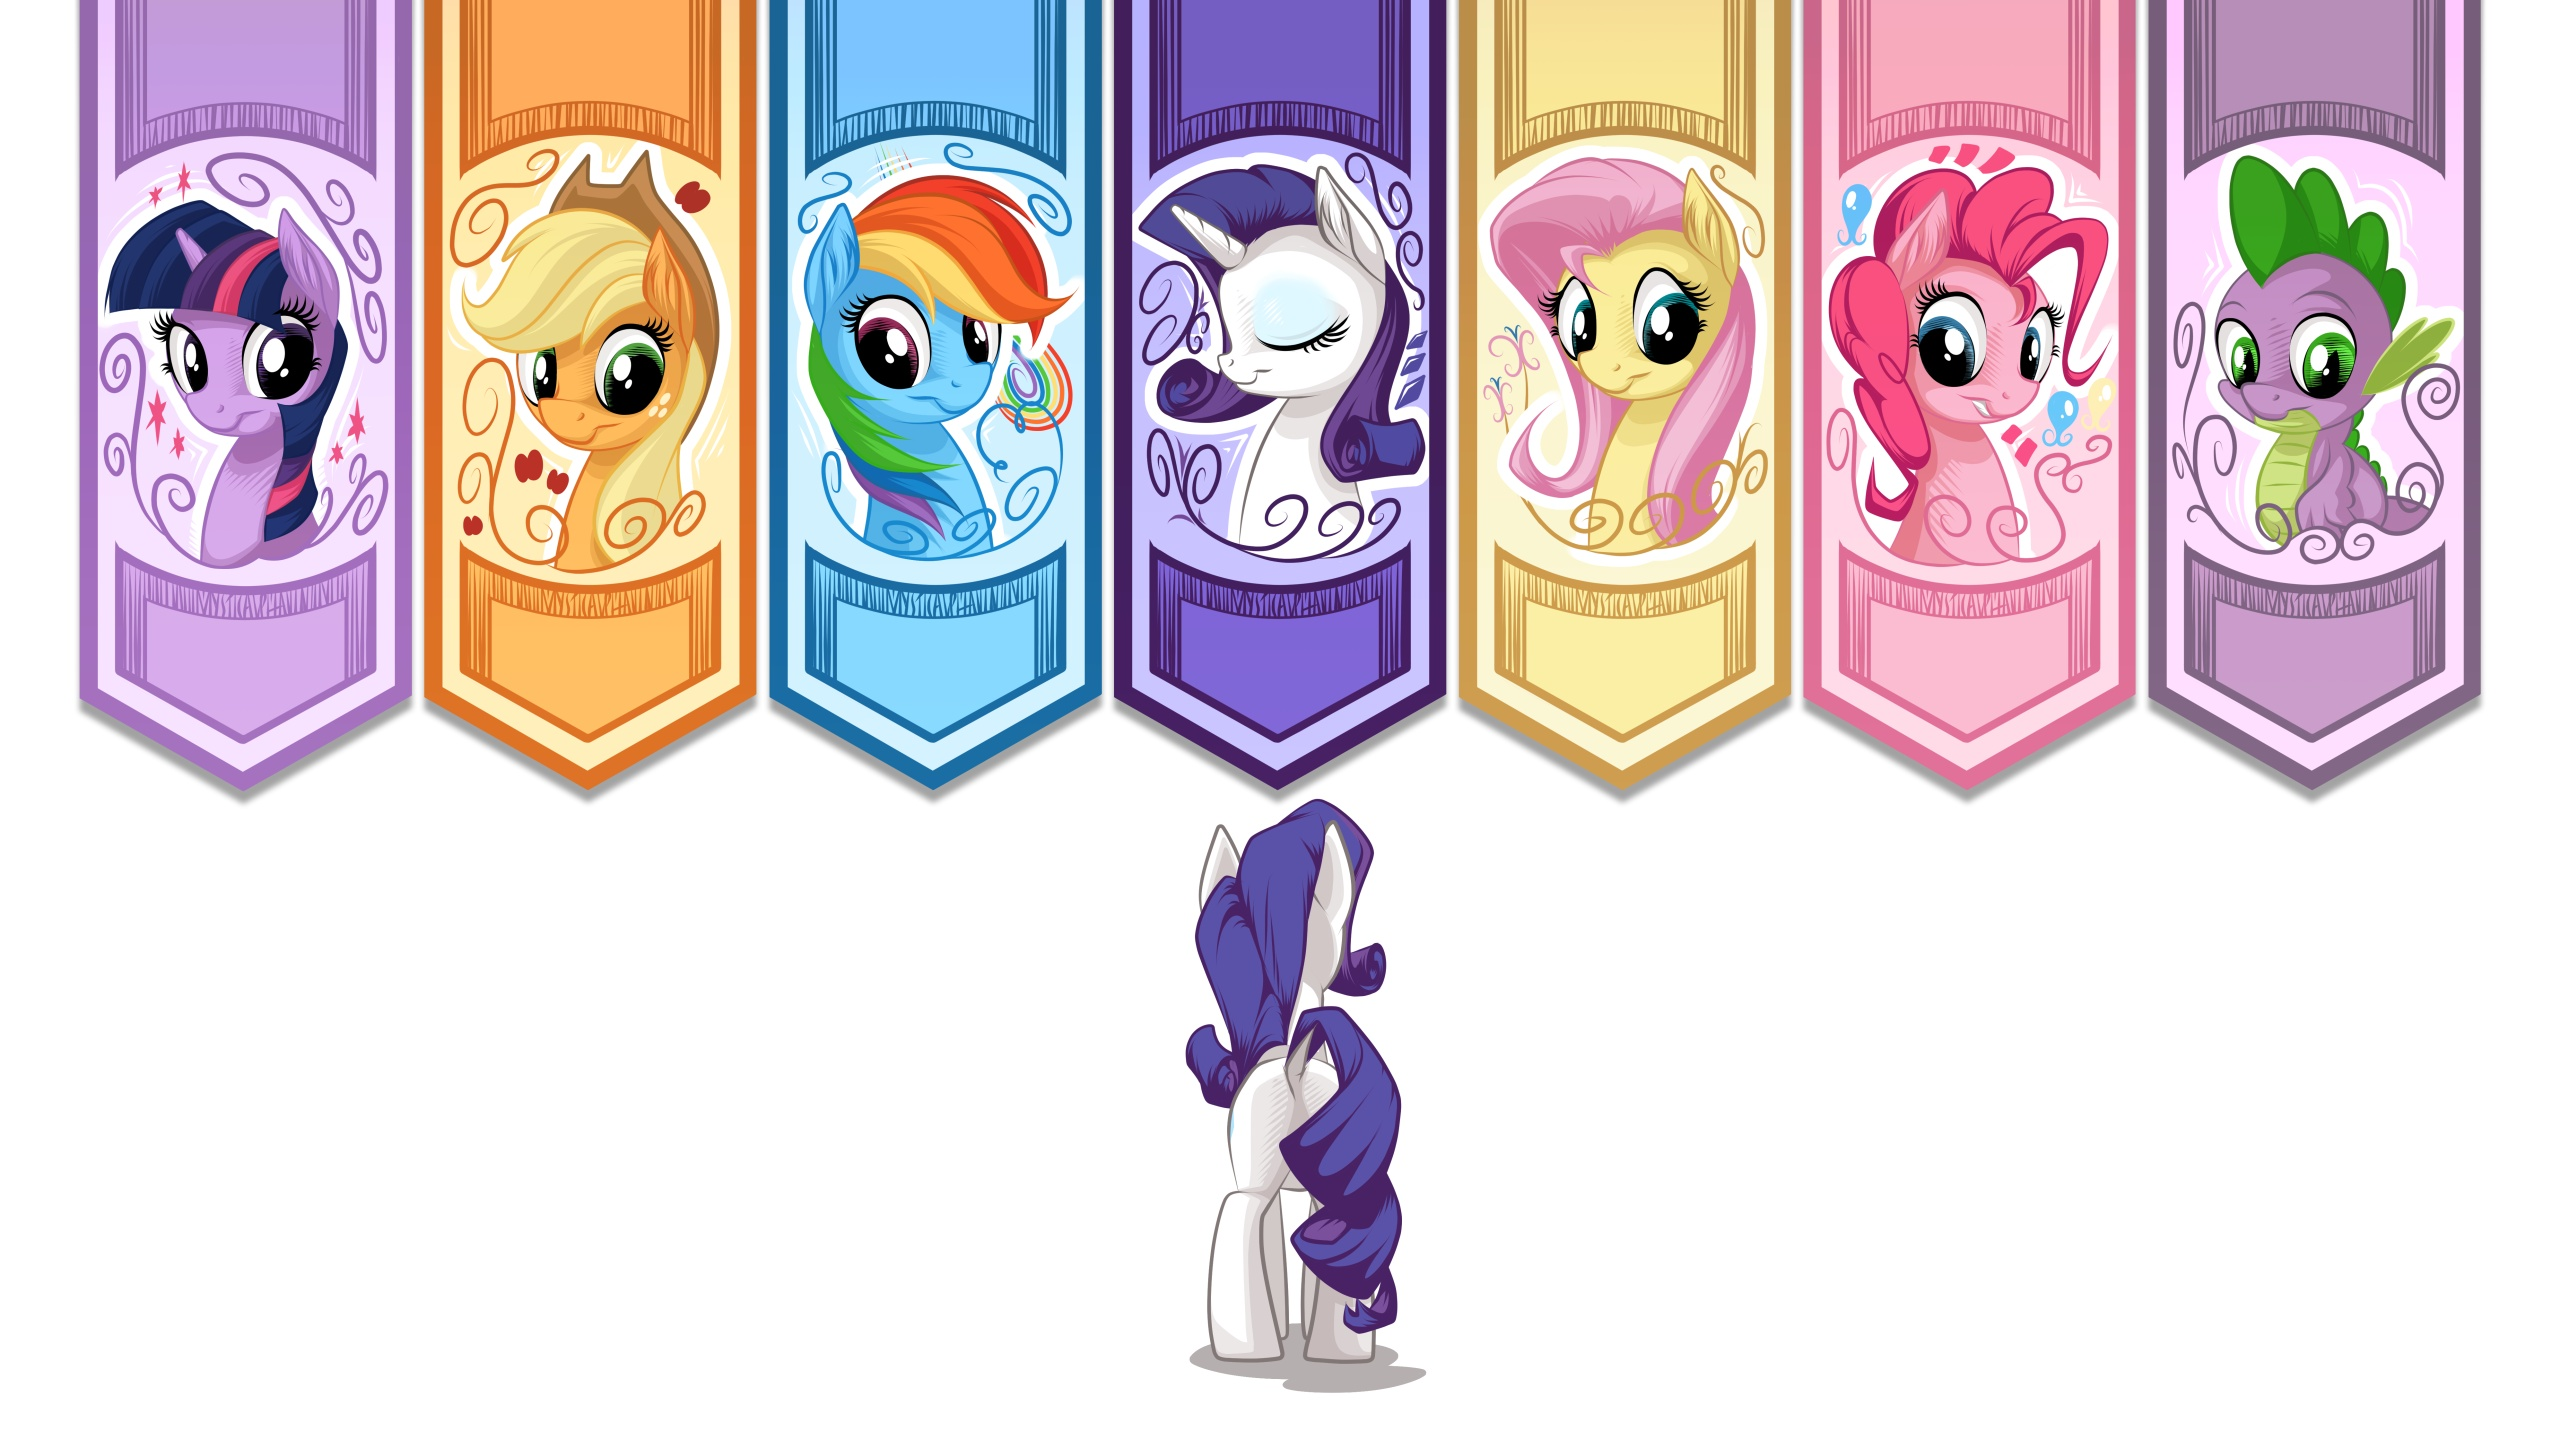 Pony Banners 16:9 by mysticalpha